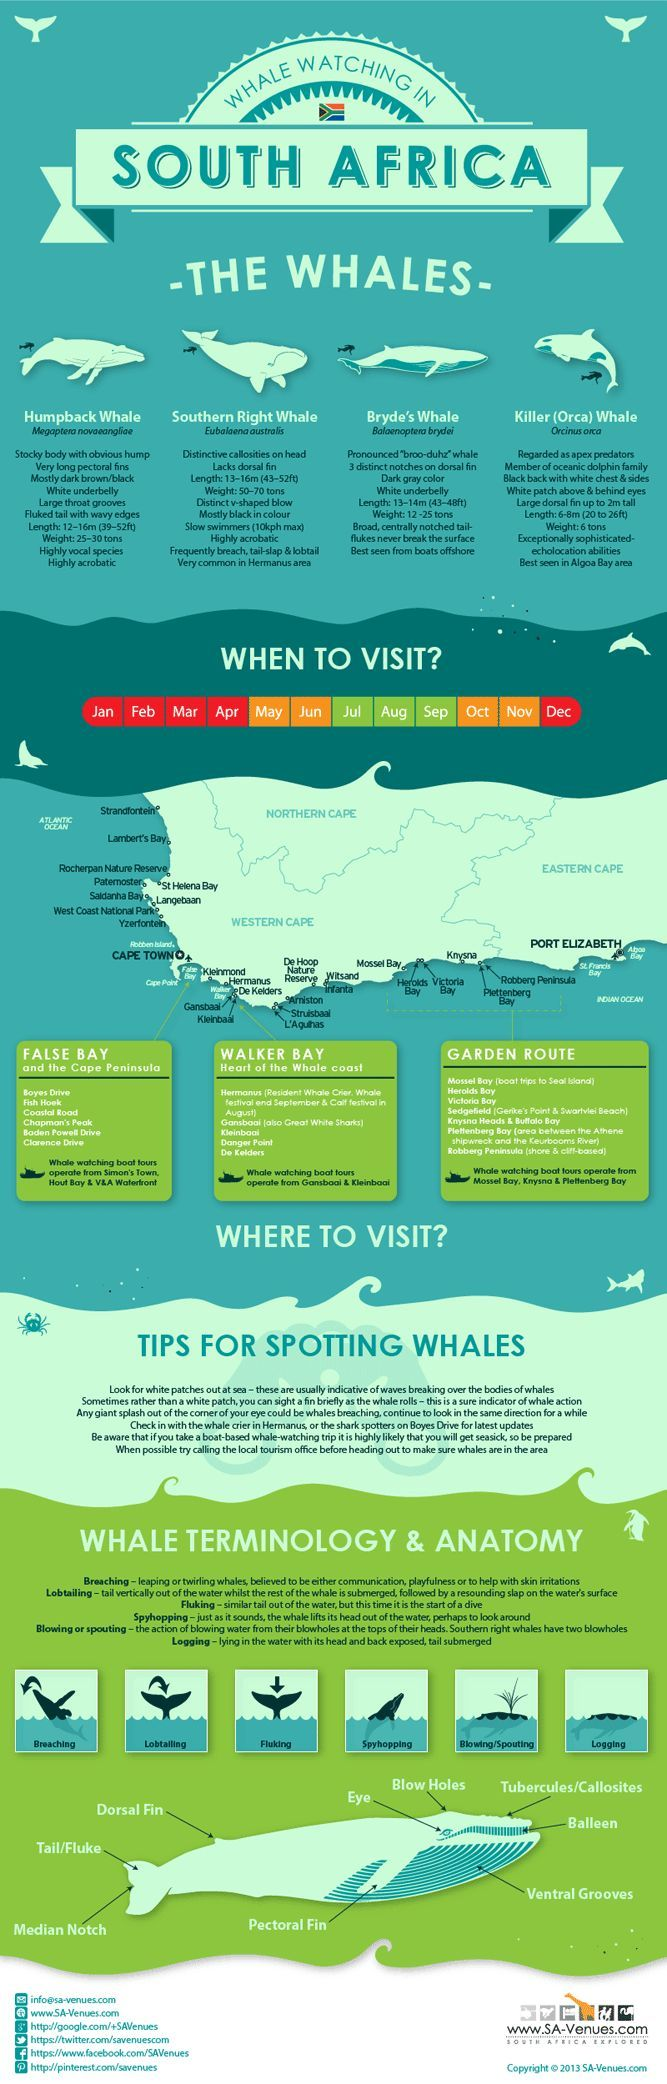 Whale watching infographic for South Africa